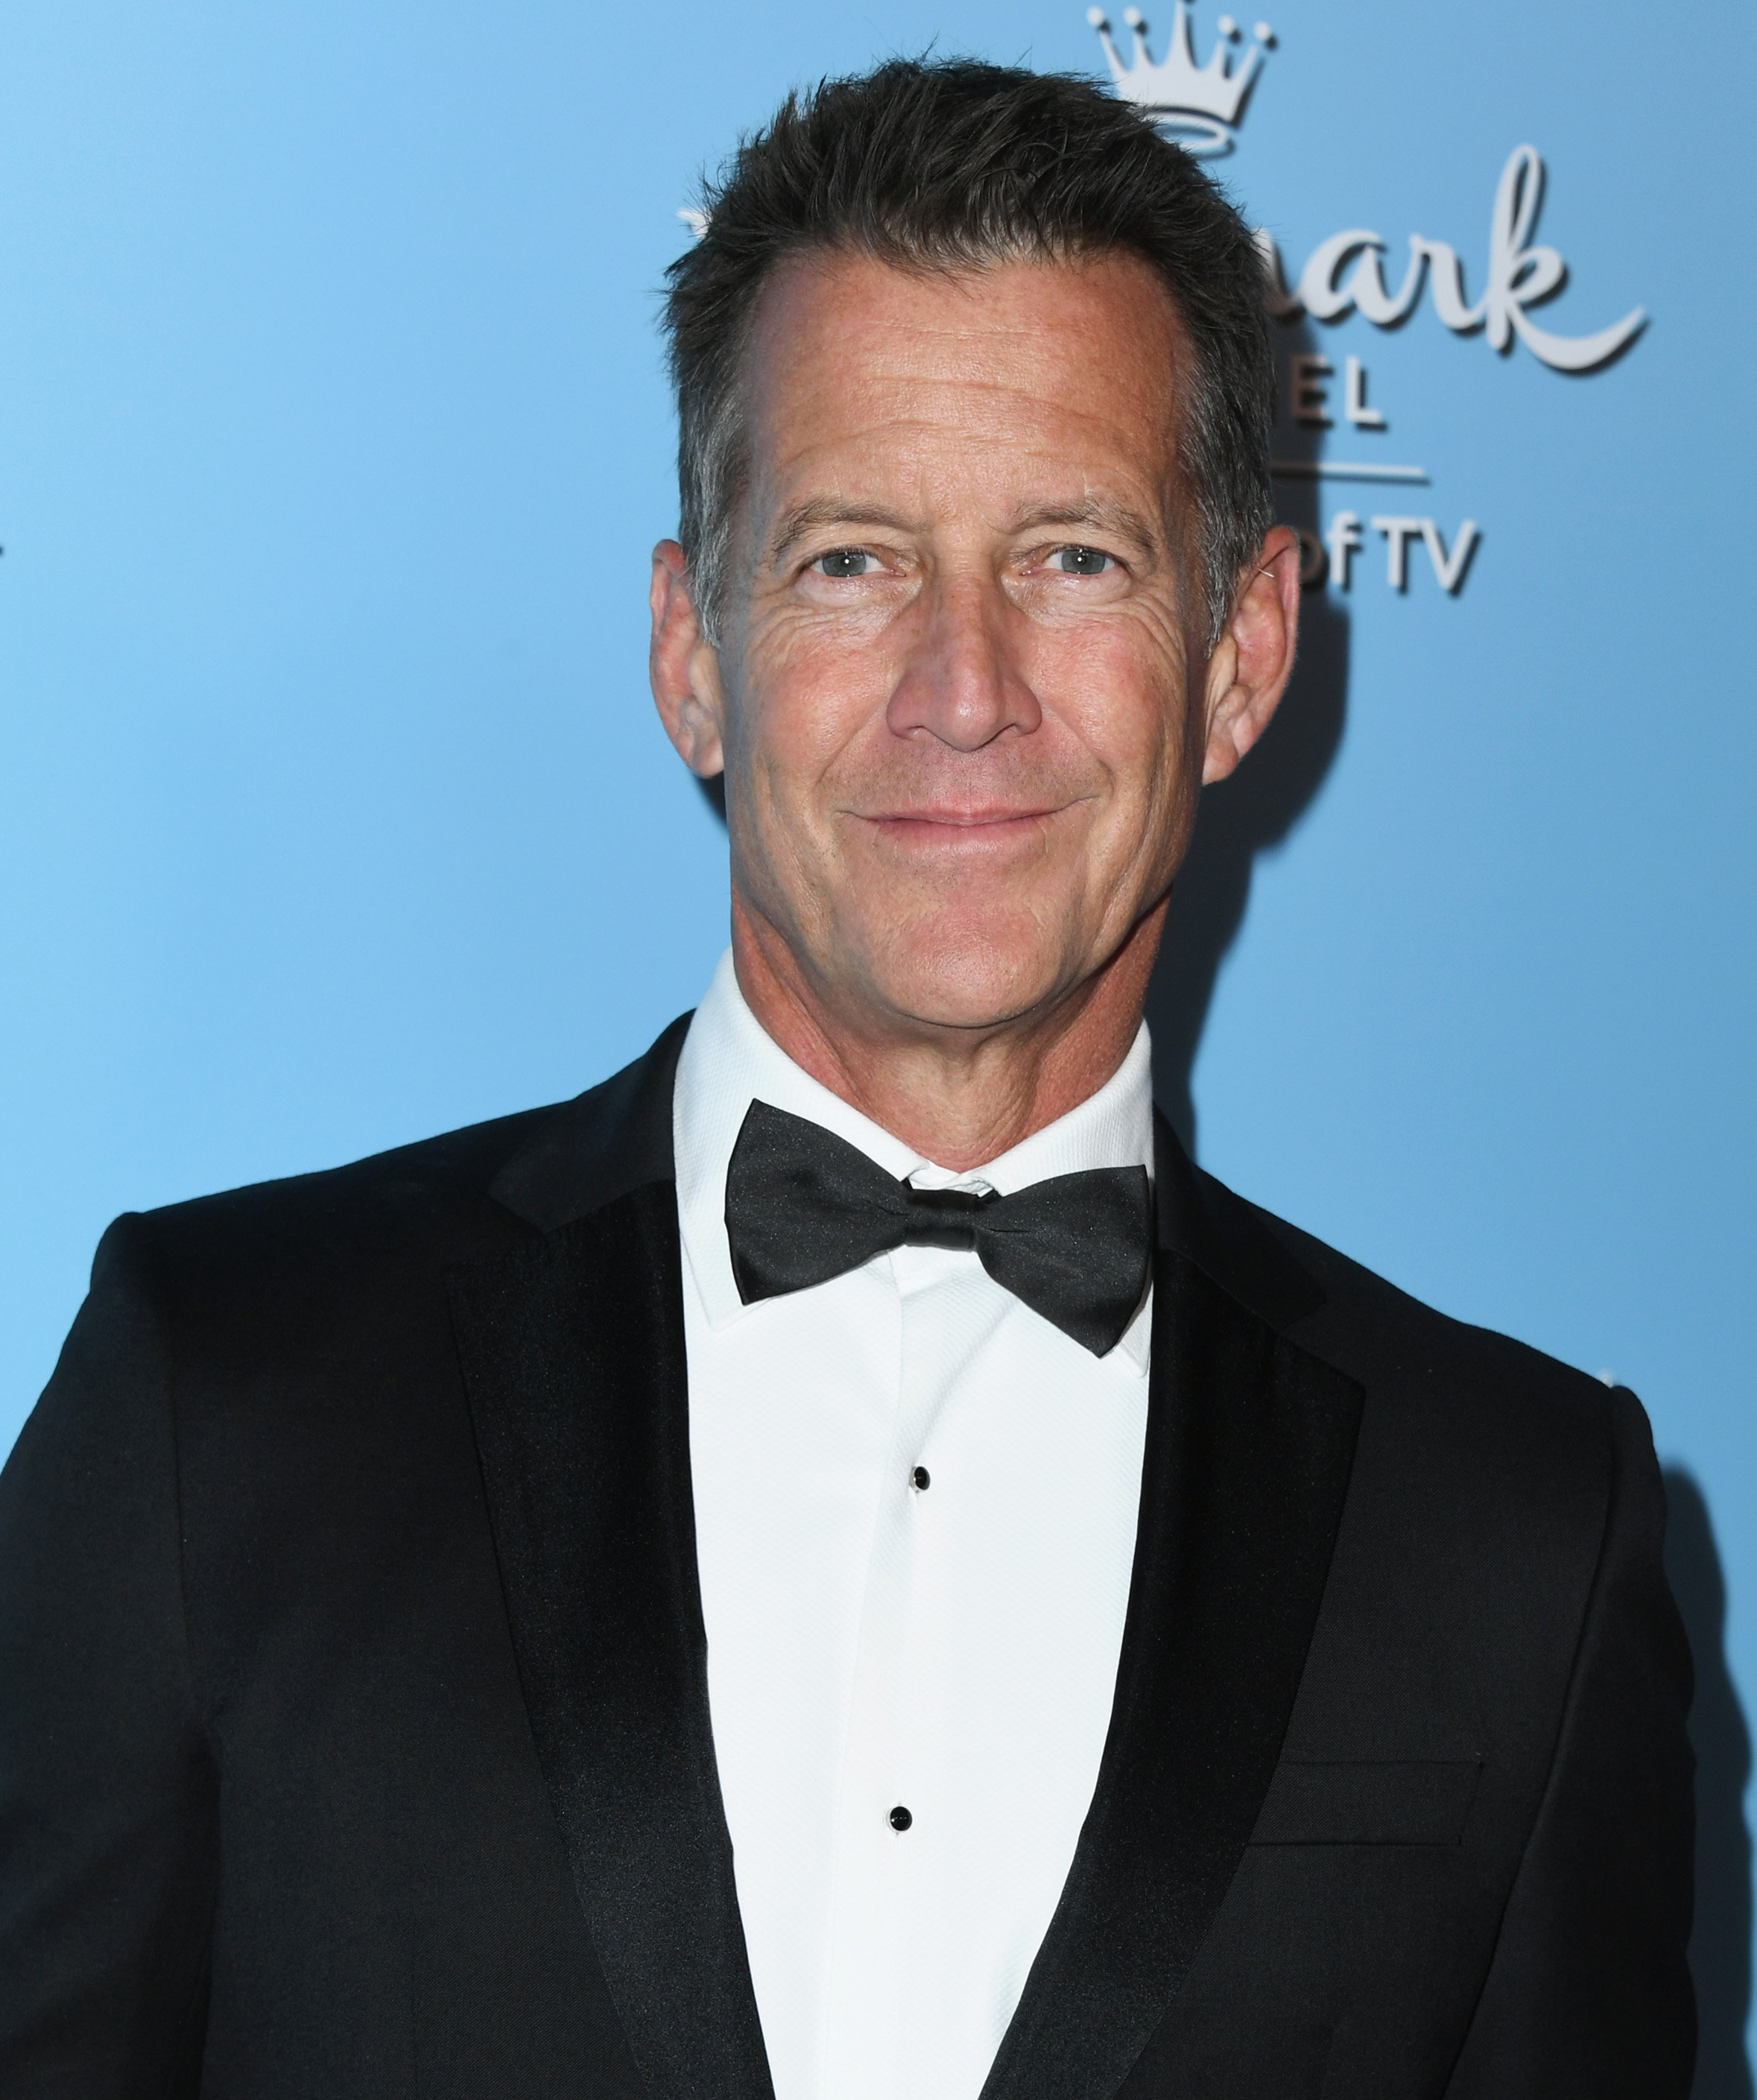 James Denton attends the 9th Annual American Humane Hero Dog Awards at The Beverly Hilton Hotel on October 05, 2019, in Beverly Hills, California. | Source: Getty Images.